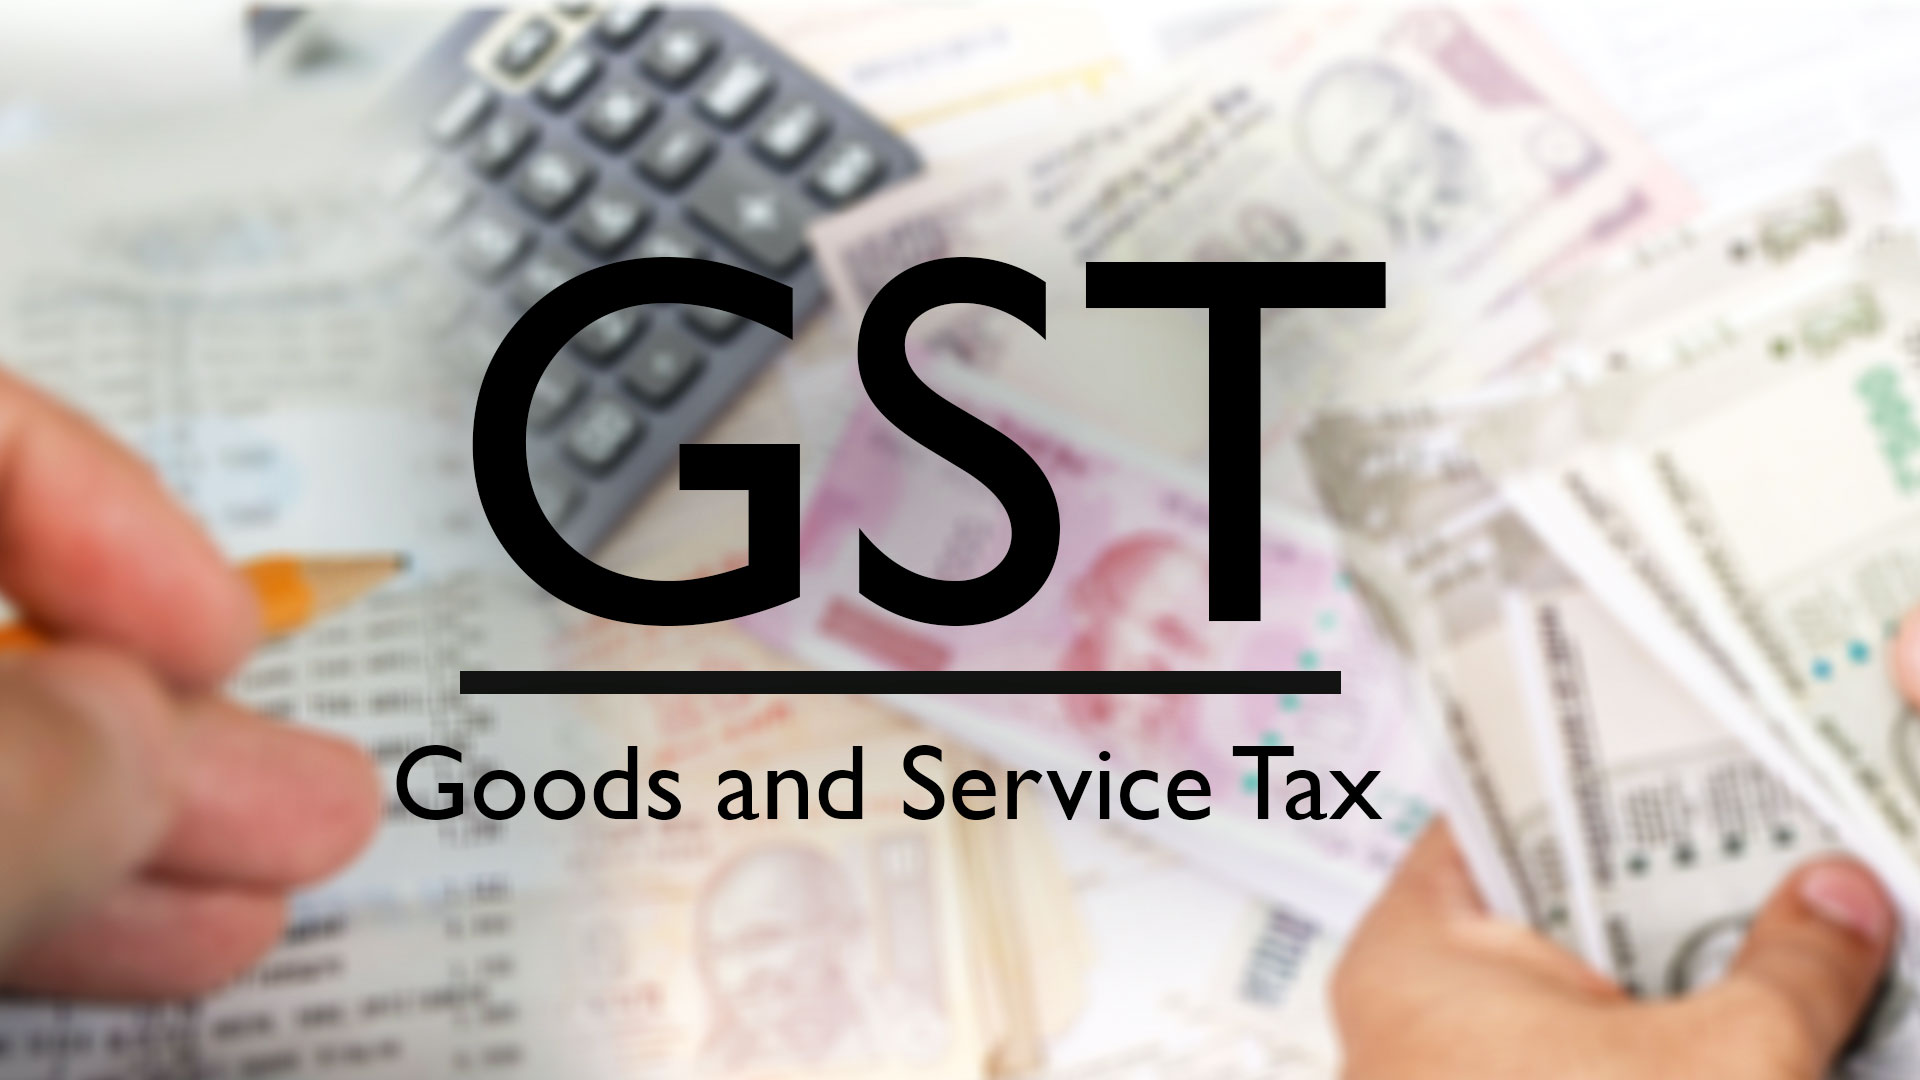 GST: Goods and Services Tax